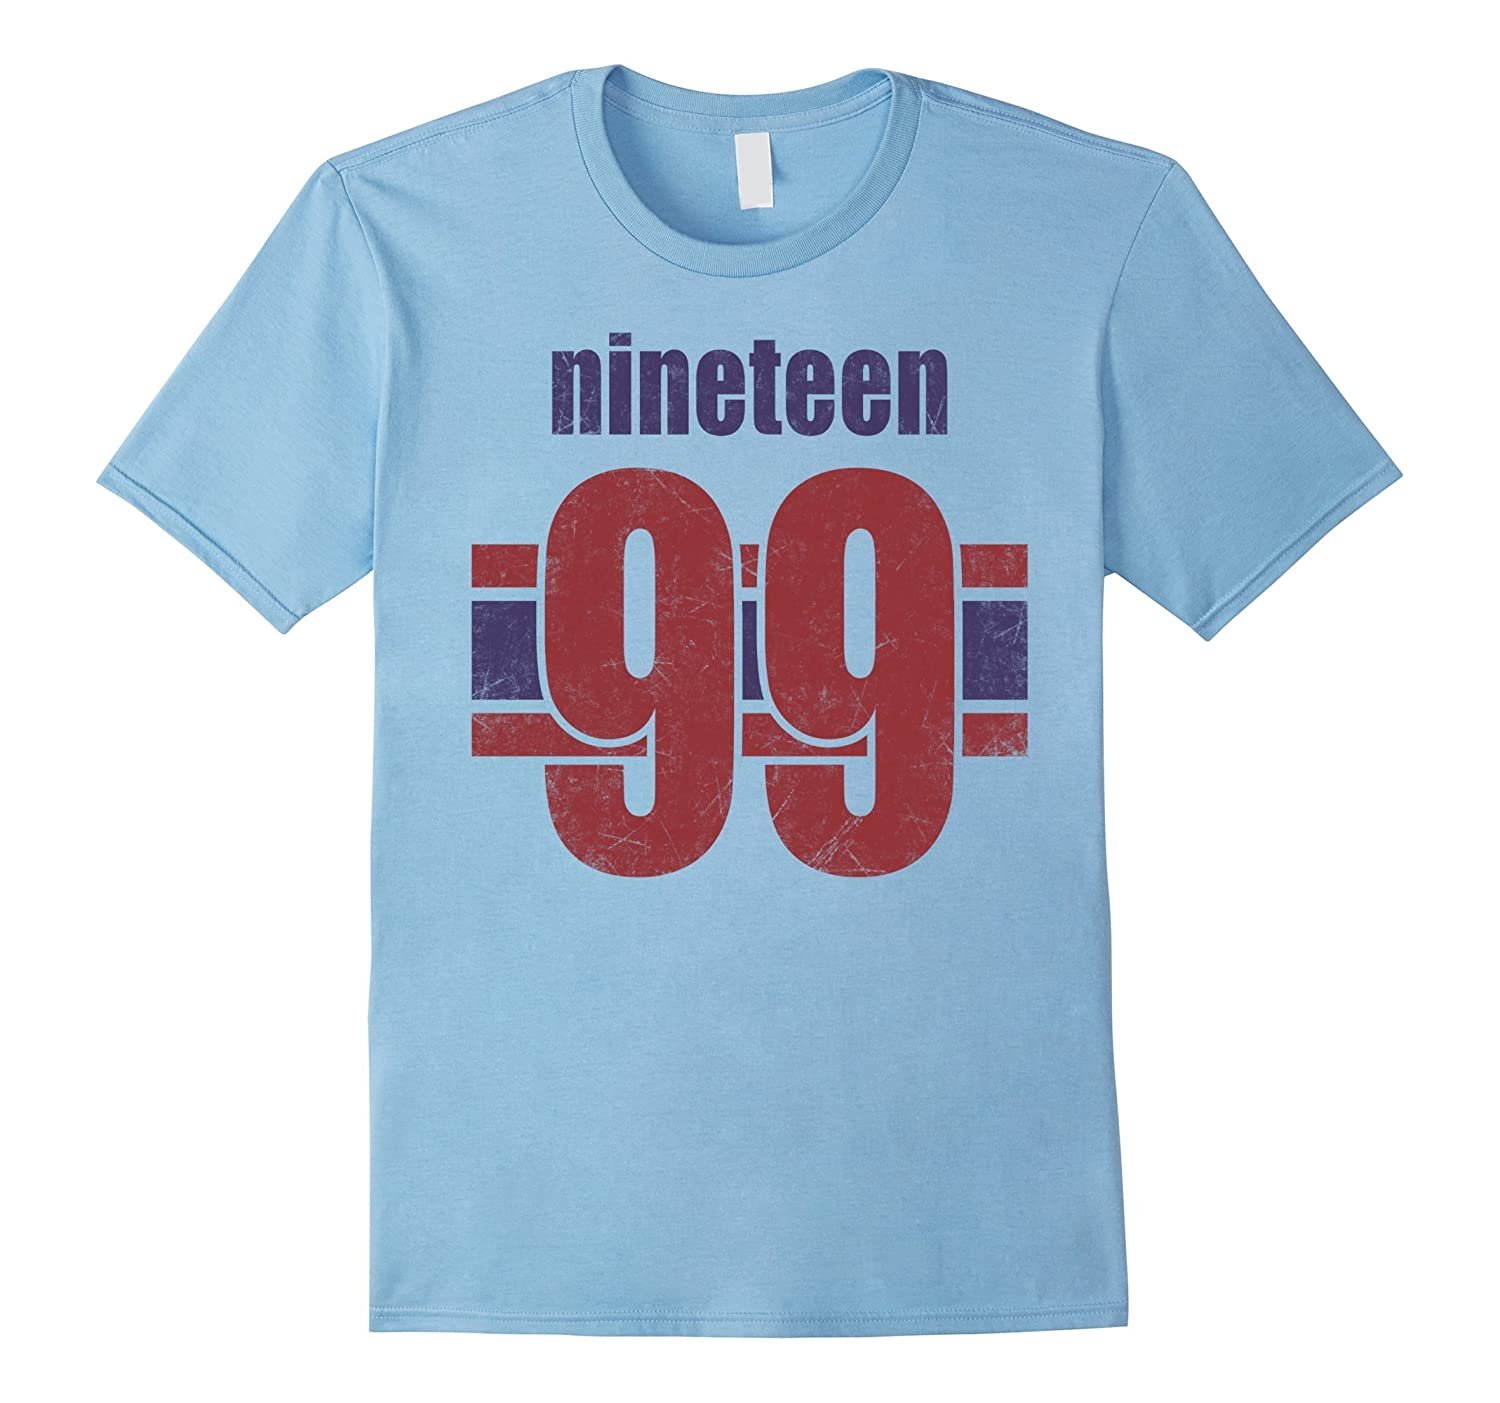 1999 Vintage 18th Birthday Shirt Gift For 18 Years Olds PL